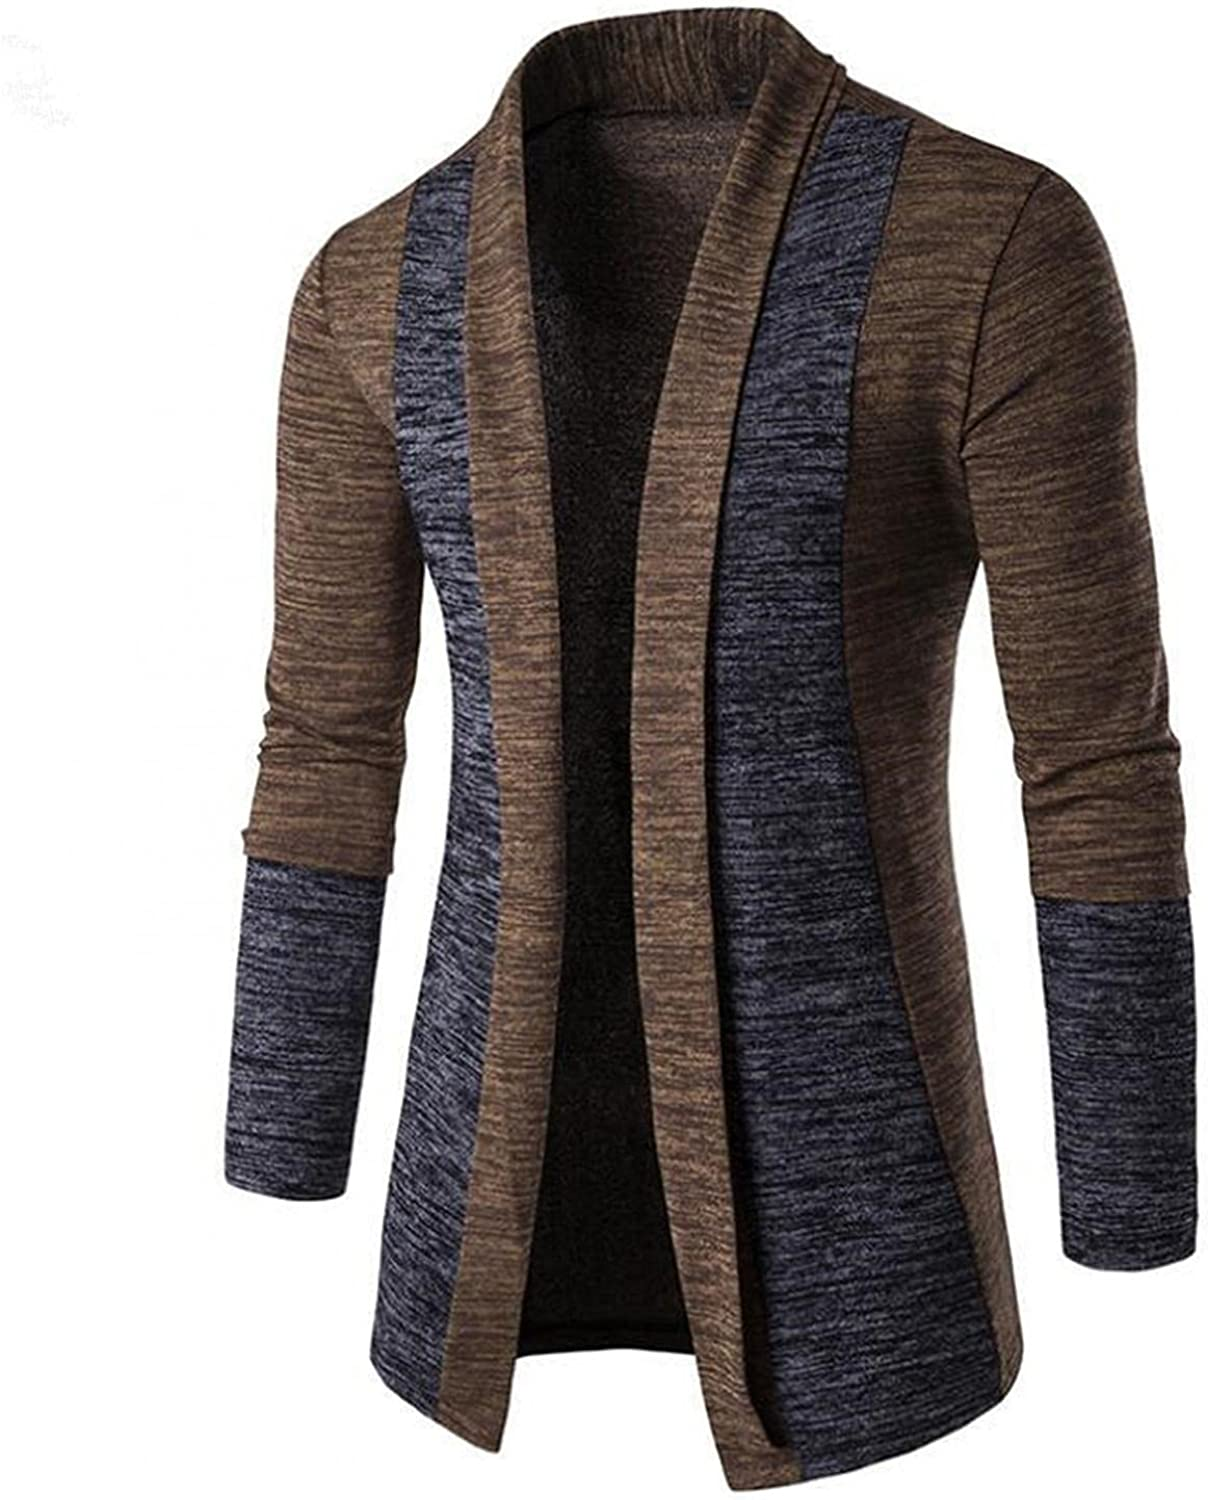 Men's Shawl Collar Cardigan Sweater Jackets Classic Cotton Knit Thick Open Front Sweater Coats Plus Size